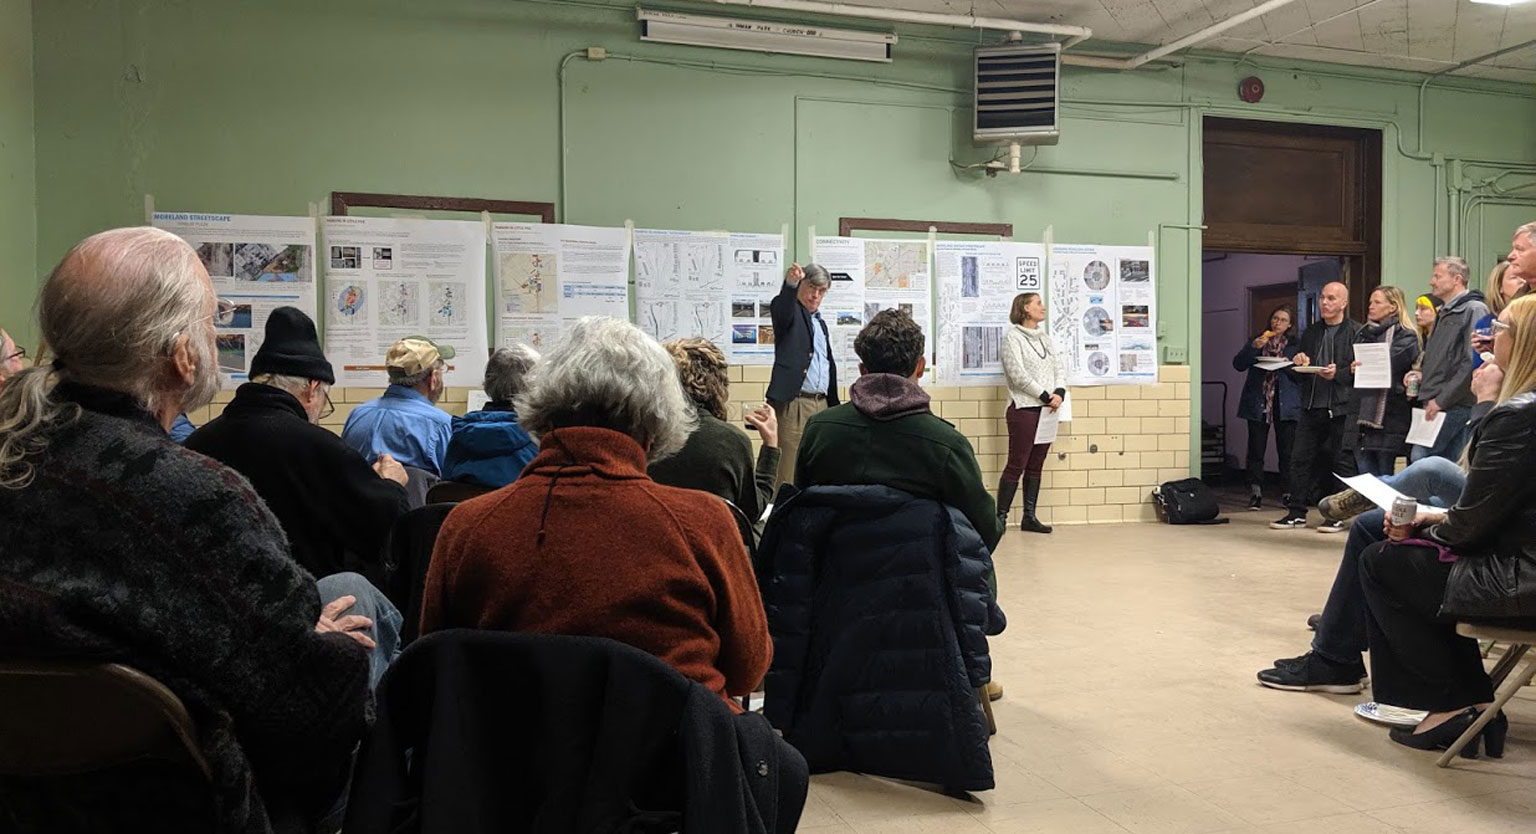 Public meeting for the Little Five Points studio